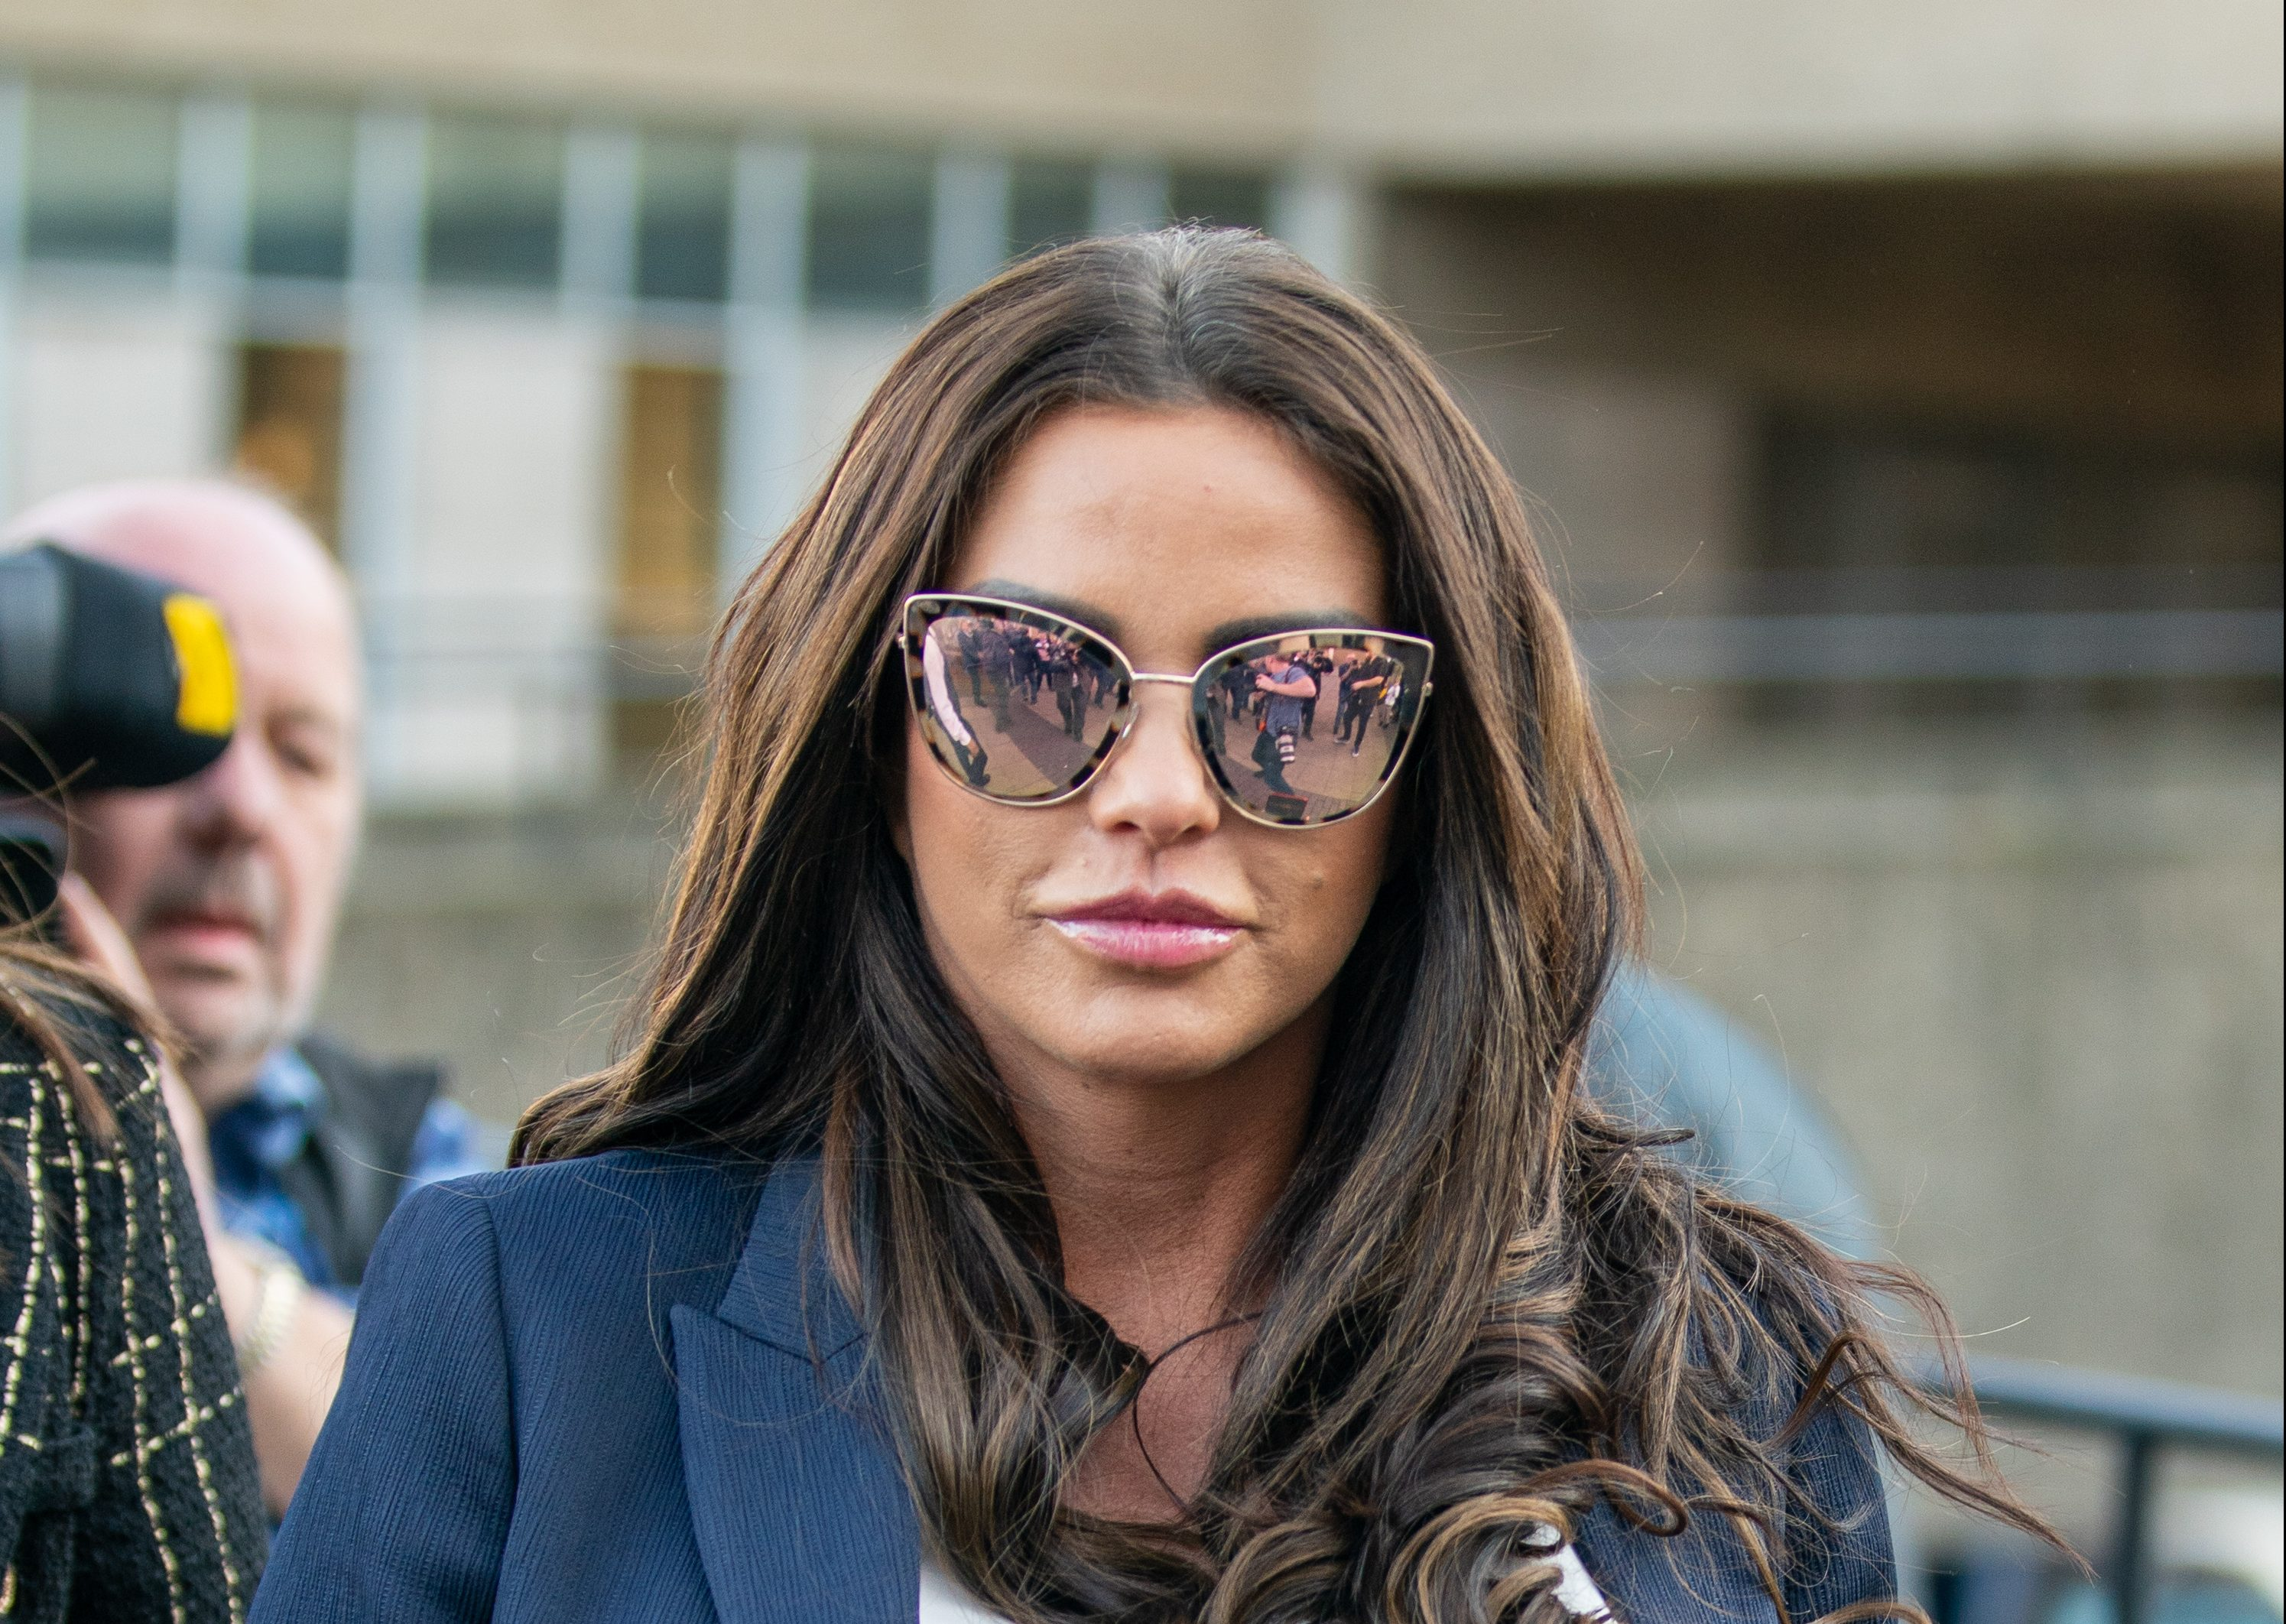 Katie Price 'moves new toyboy Charles Drury into her home'